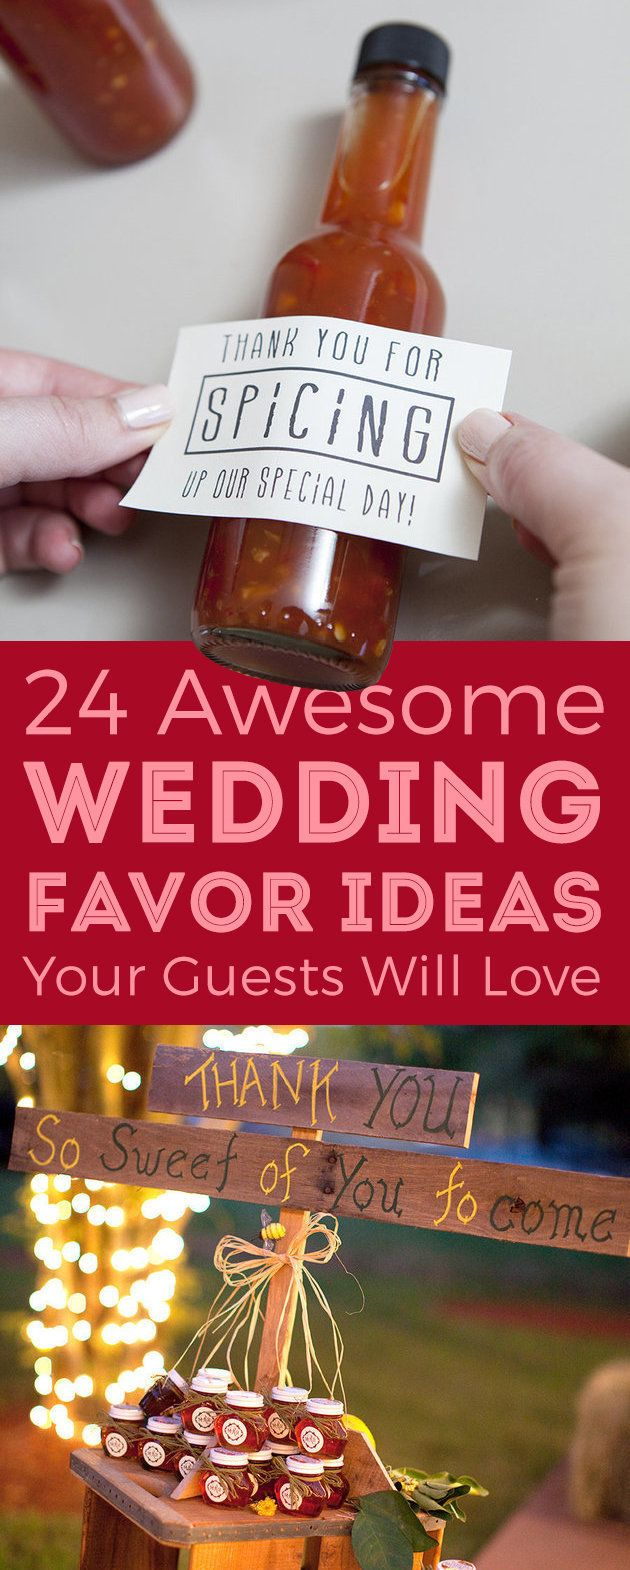 Your guests will LOVE these cute wedding favors!